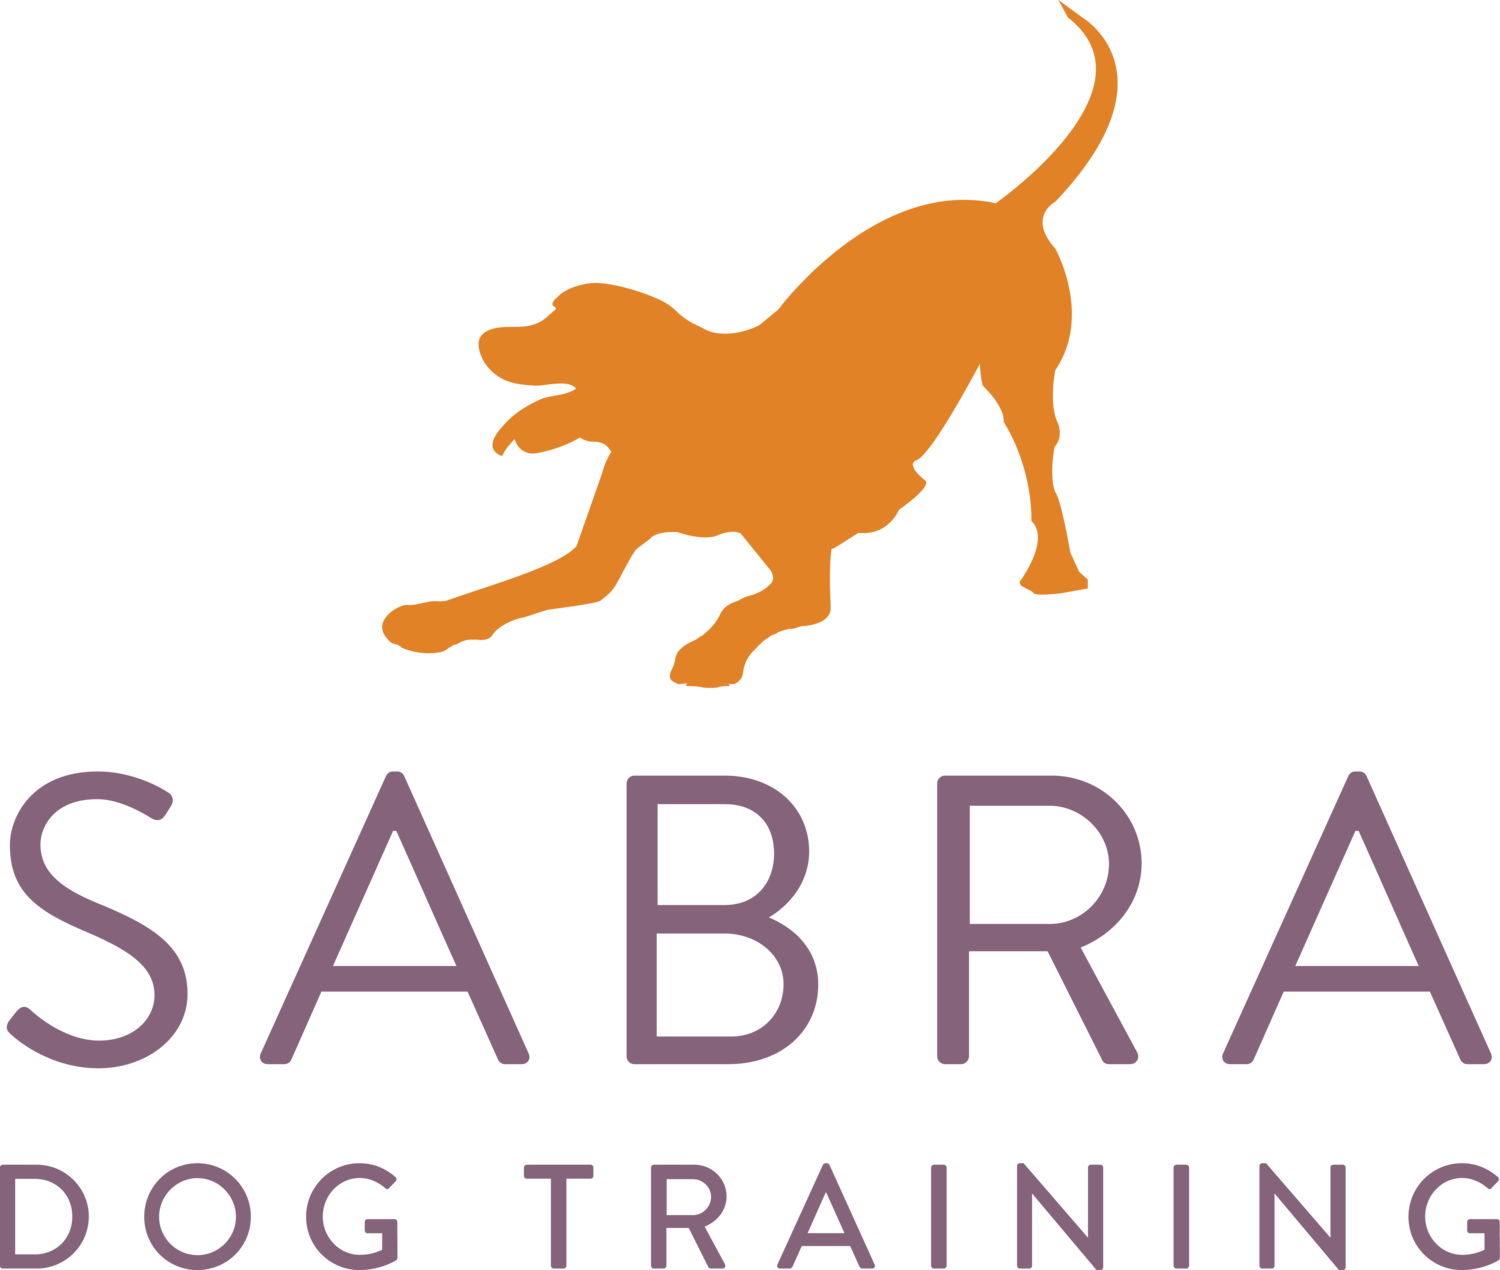 Sabra Dog Training